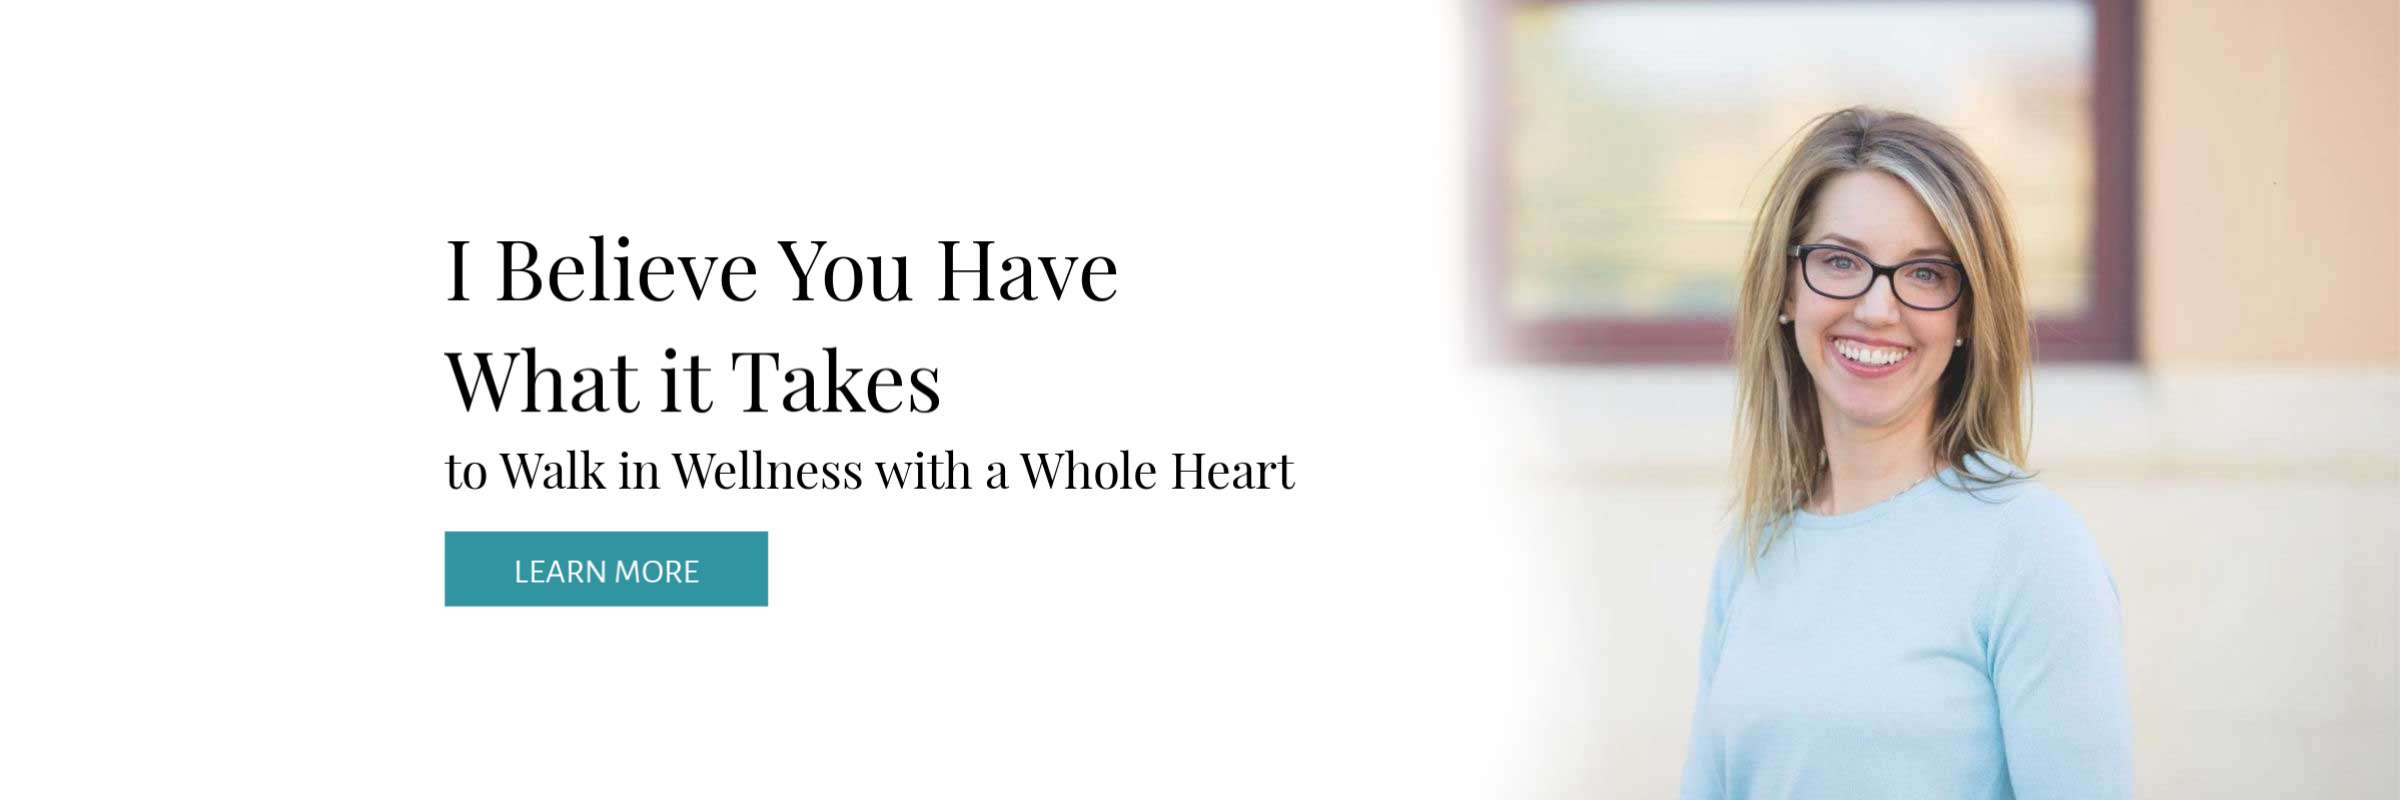 At Well Made Wellness, I believe you have what it takes to walk in wellness with a whole heart.